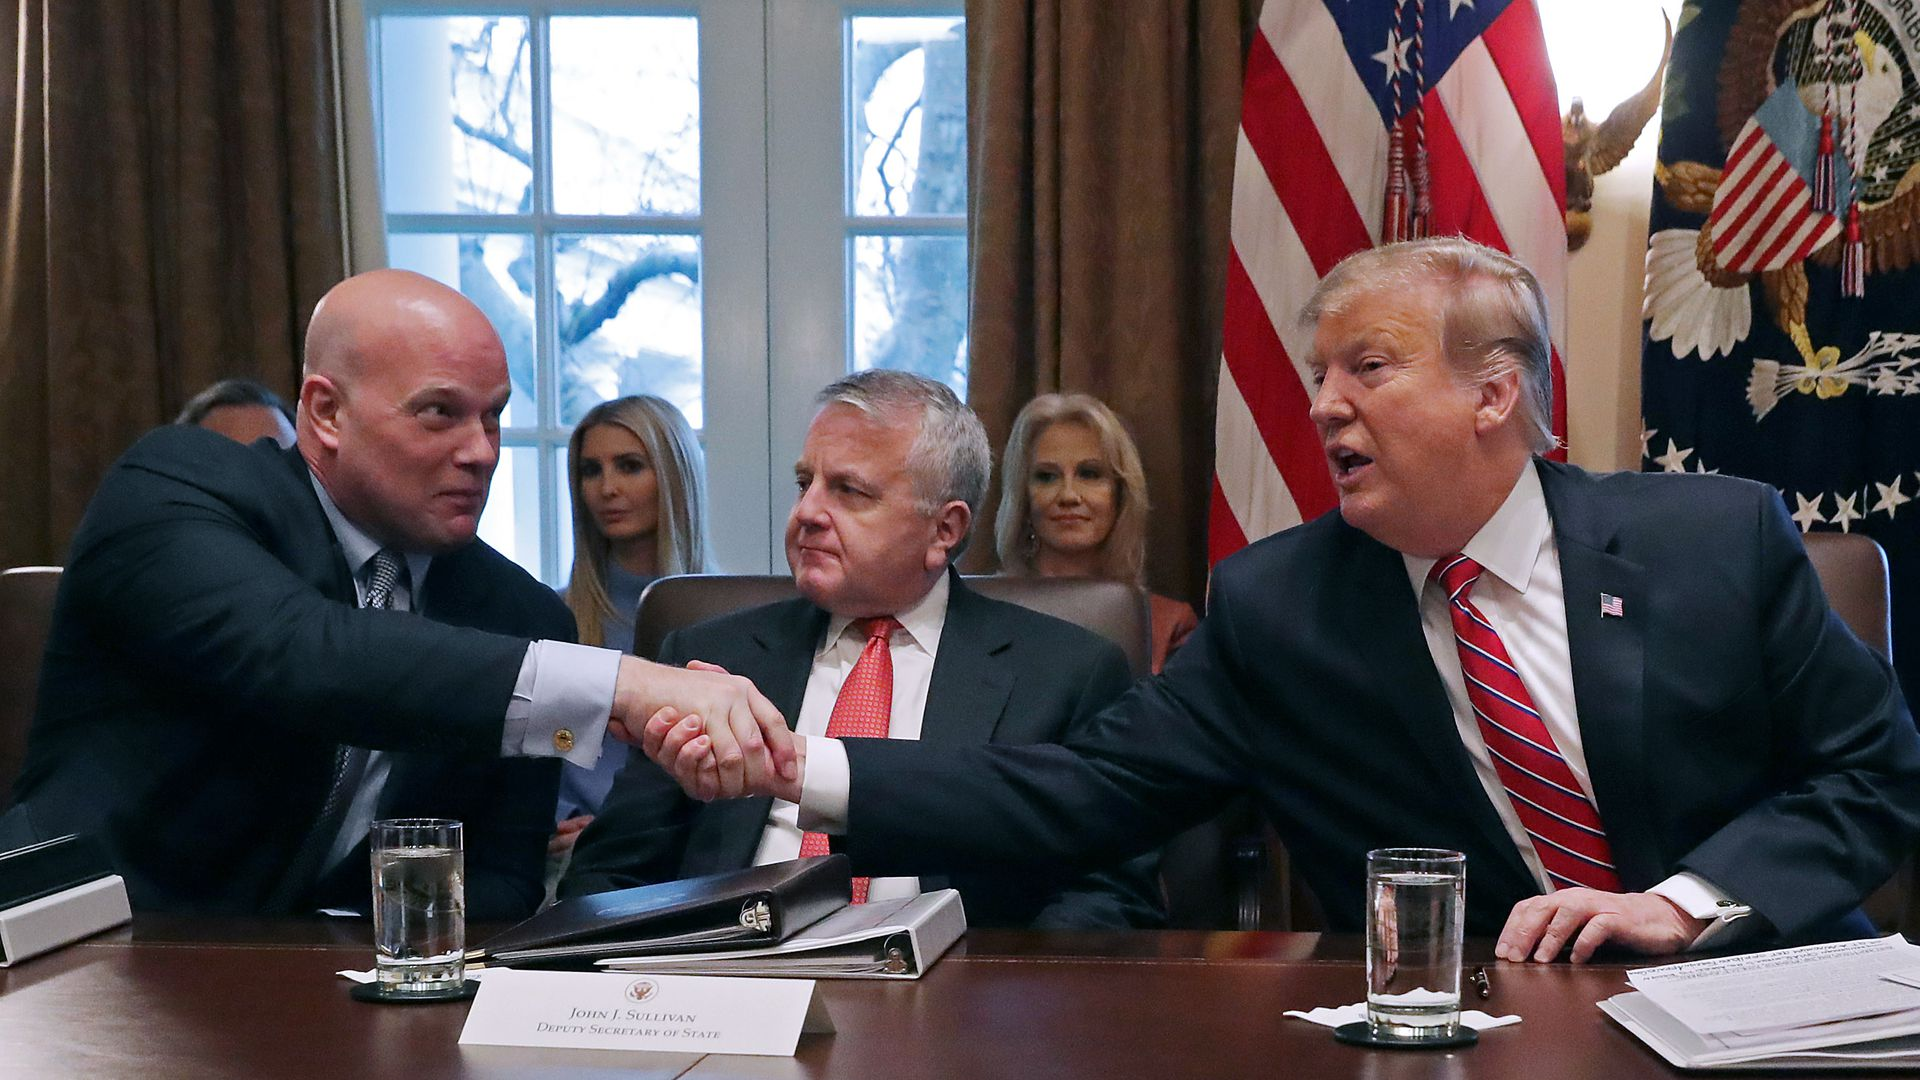 Matt Whitaker shaking Trump's hand